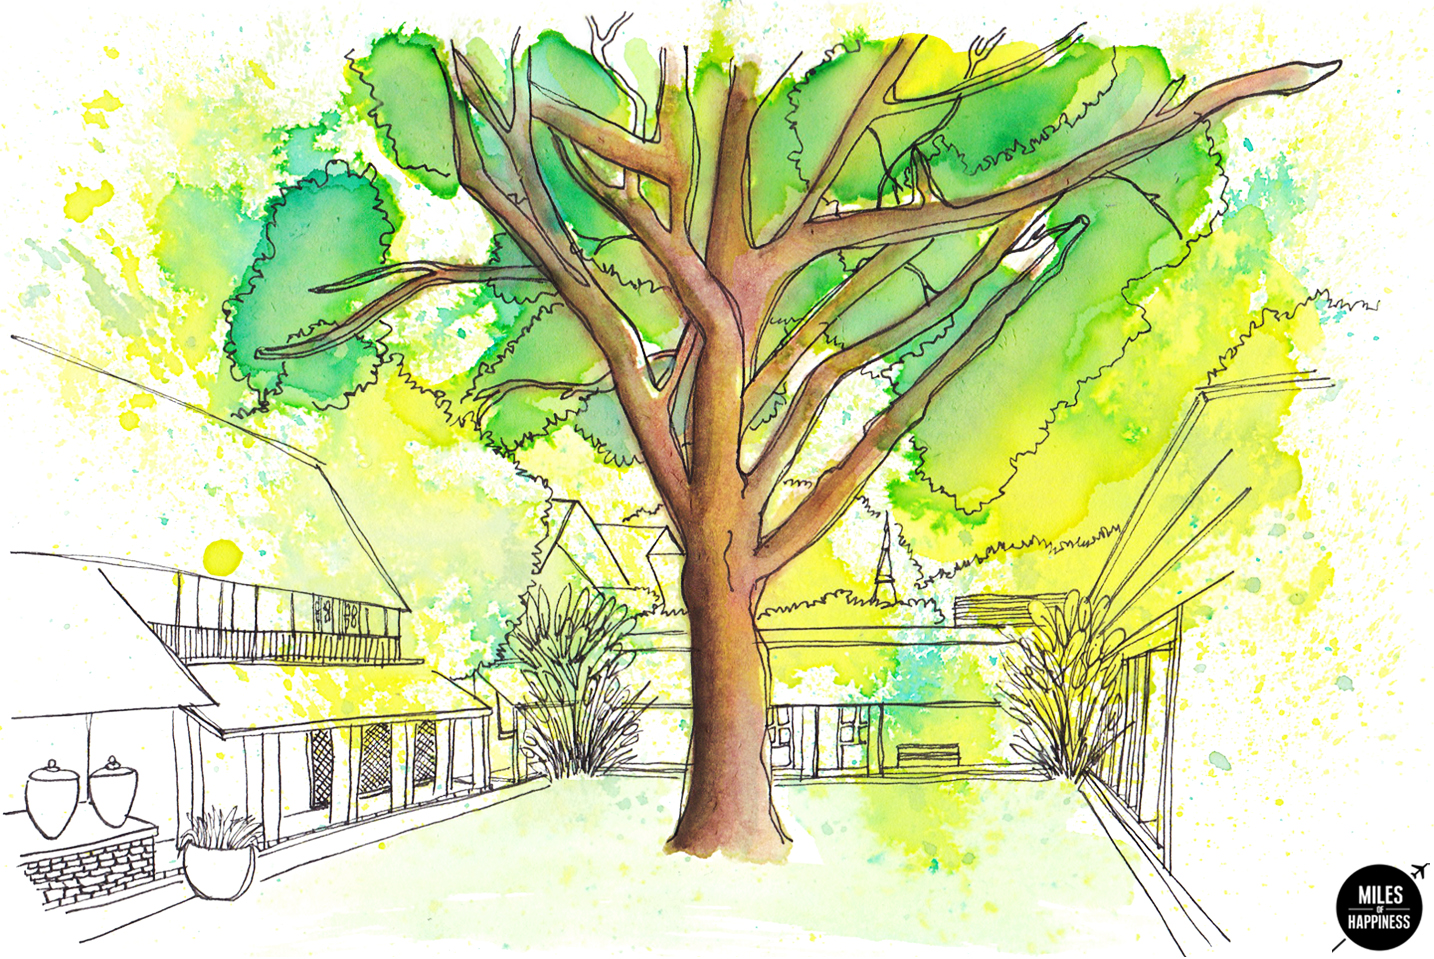 Tamarind Village Illustration by Miles of Happiness